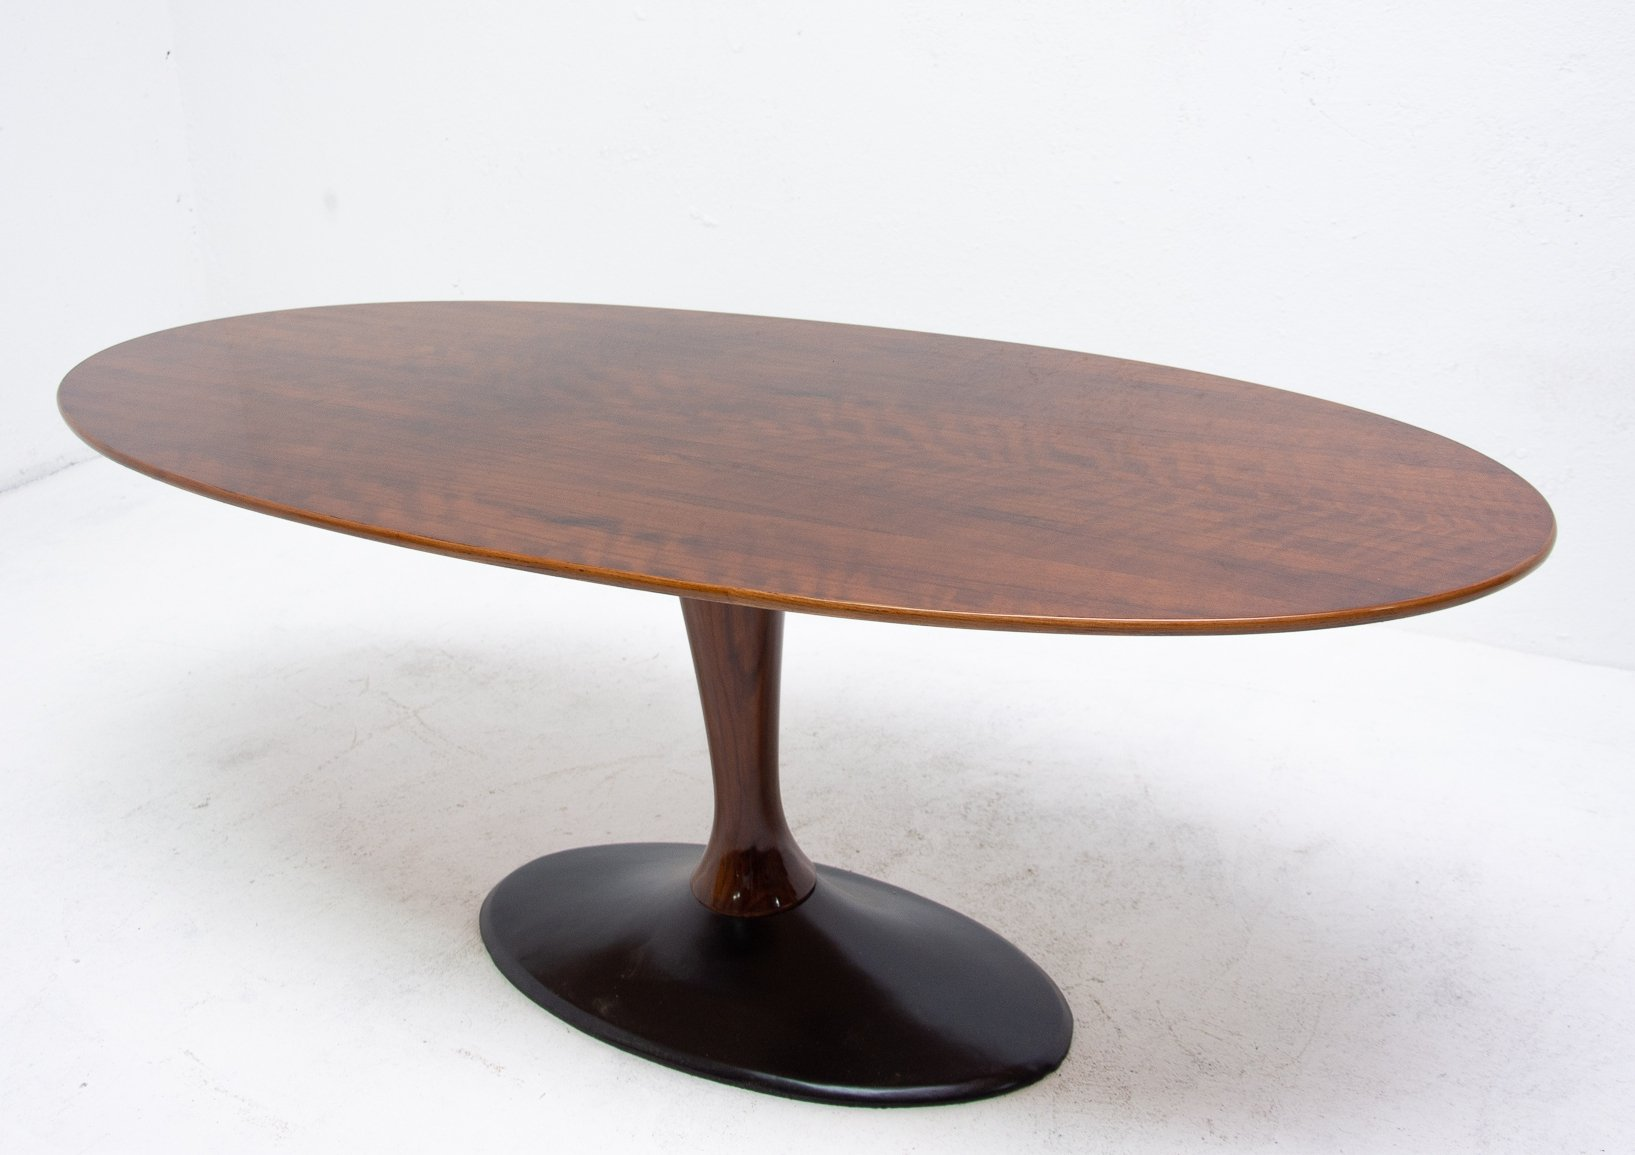 Vintage Oval Coffee Table From